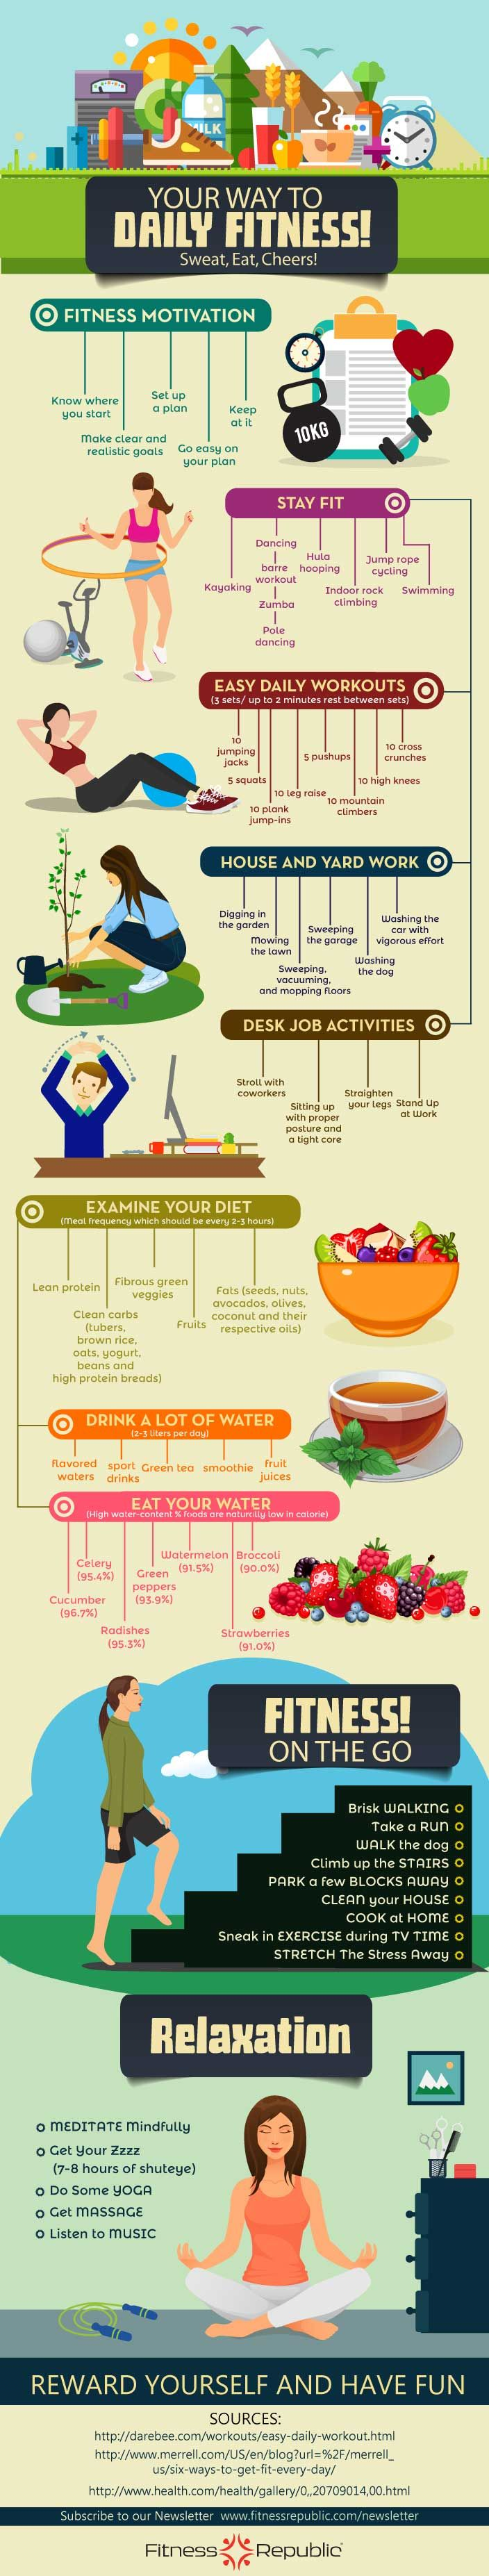 your ways to daily fitness